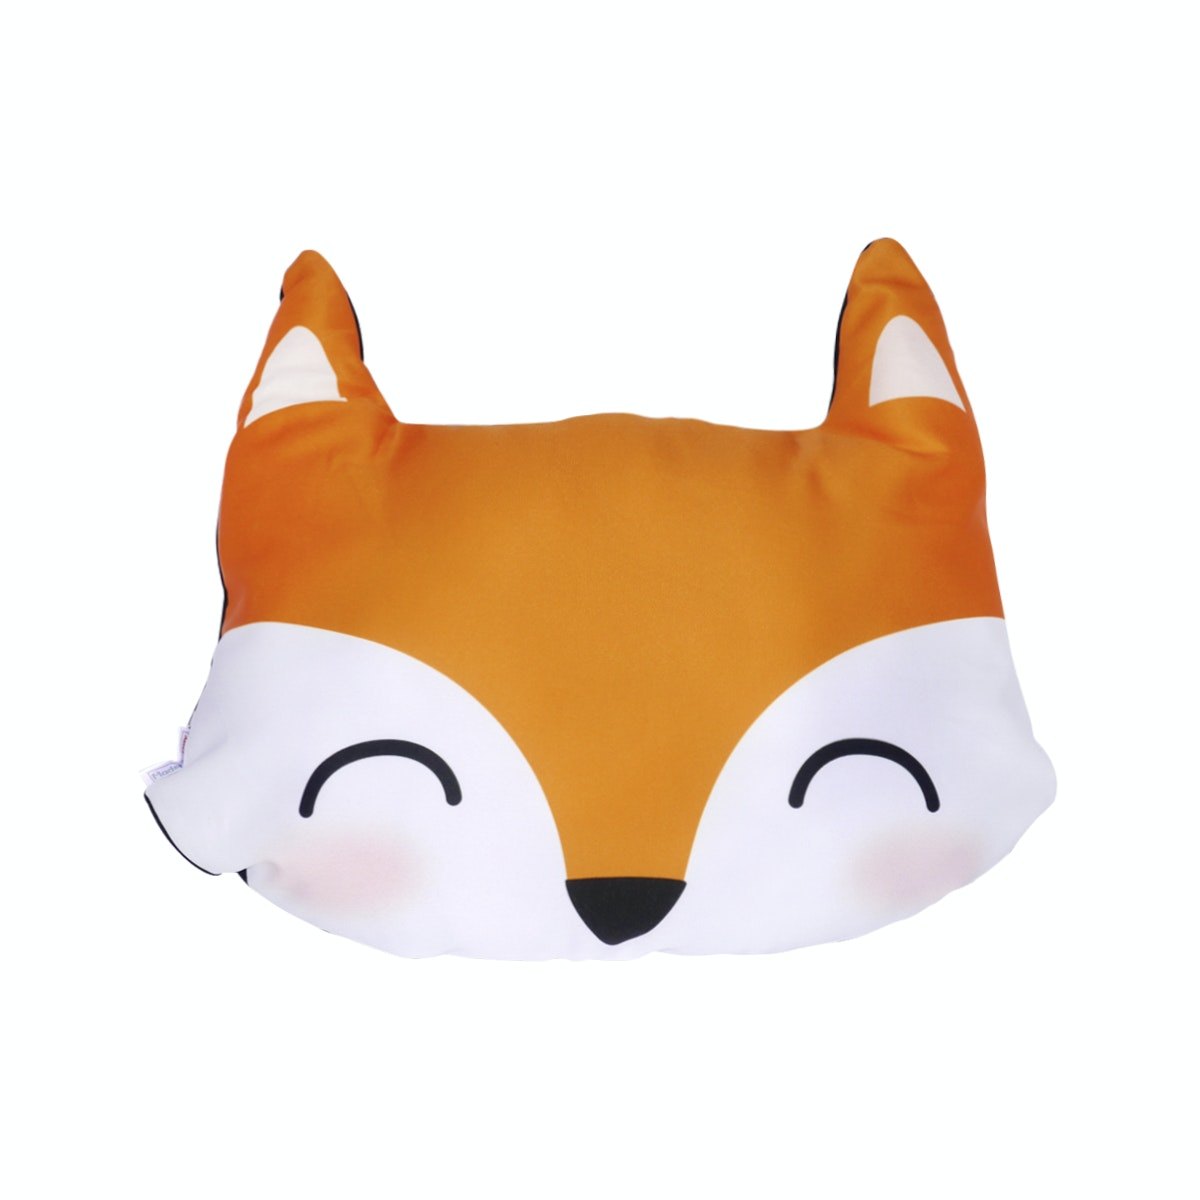 MadeMyDay Boneka Bantal Mr Fox